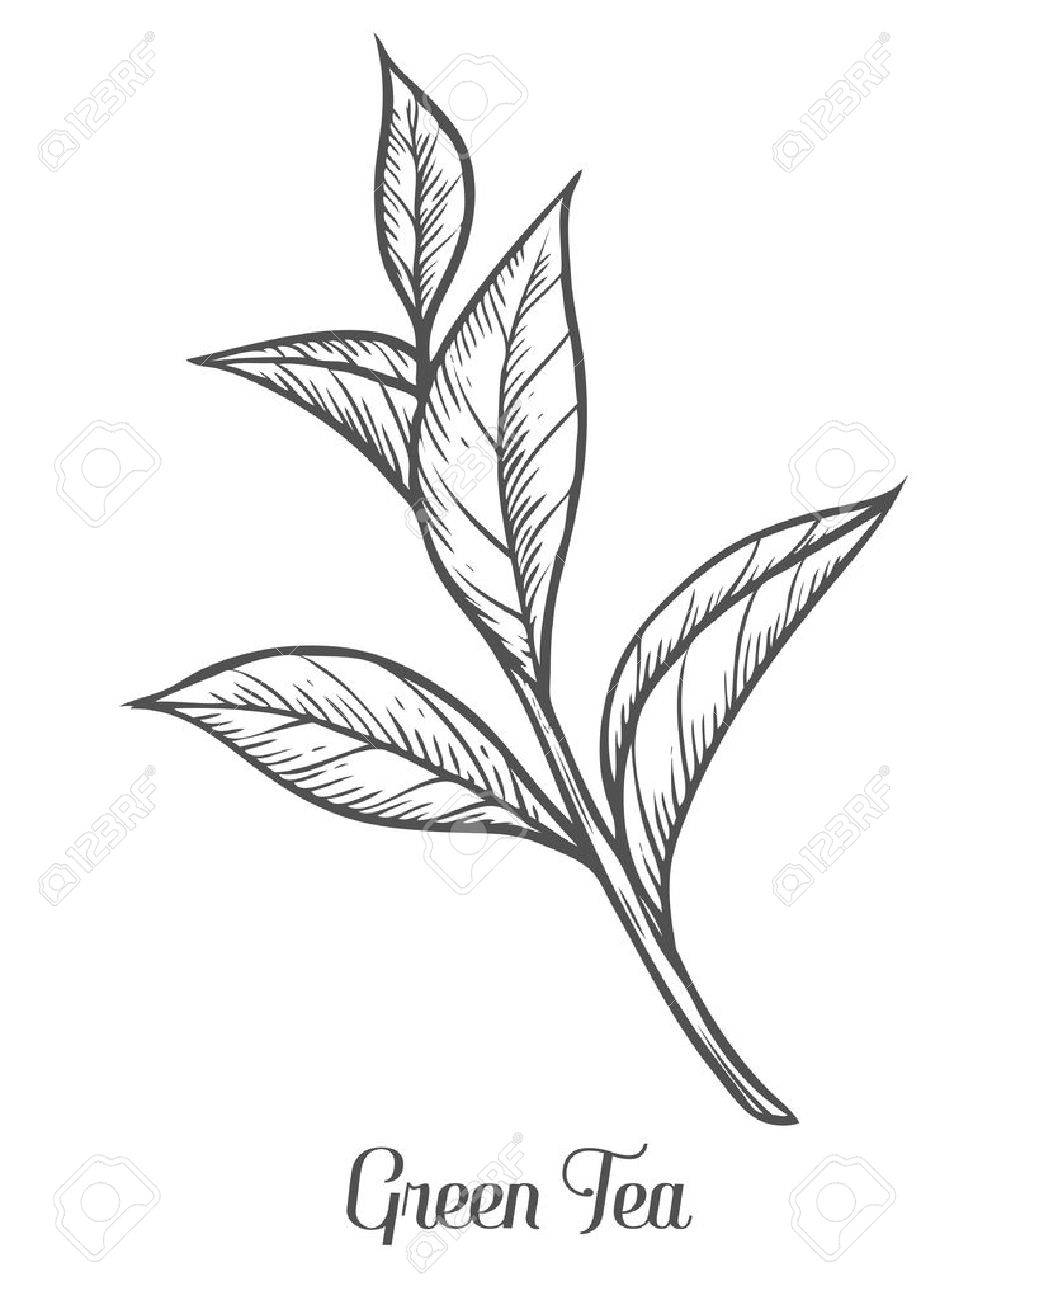 Tea drawing at getdrawings free for personal use tea drawing 1039x1300 green tea plant leaf hand drawn sketch vector illustration thecheapjerseys Image collections